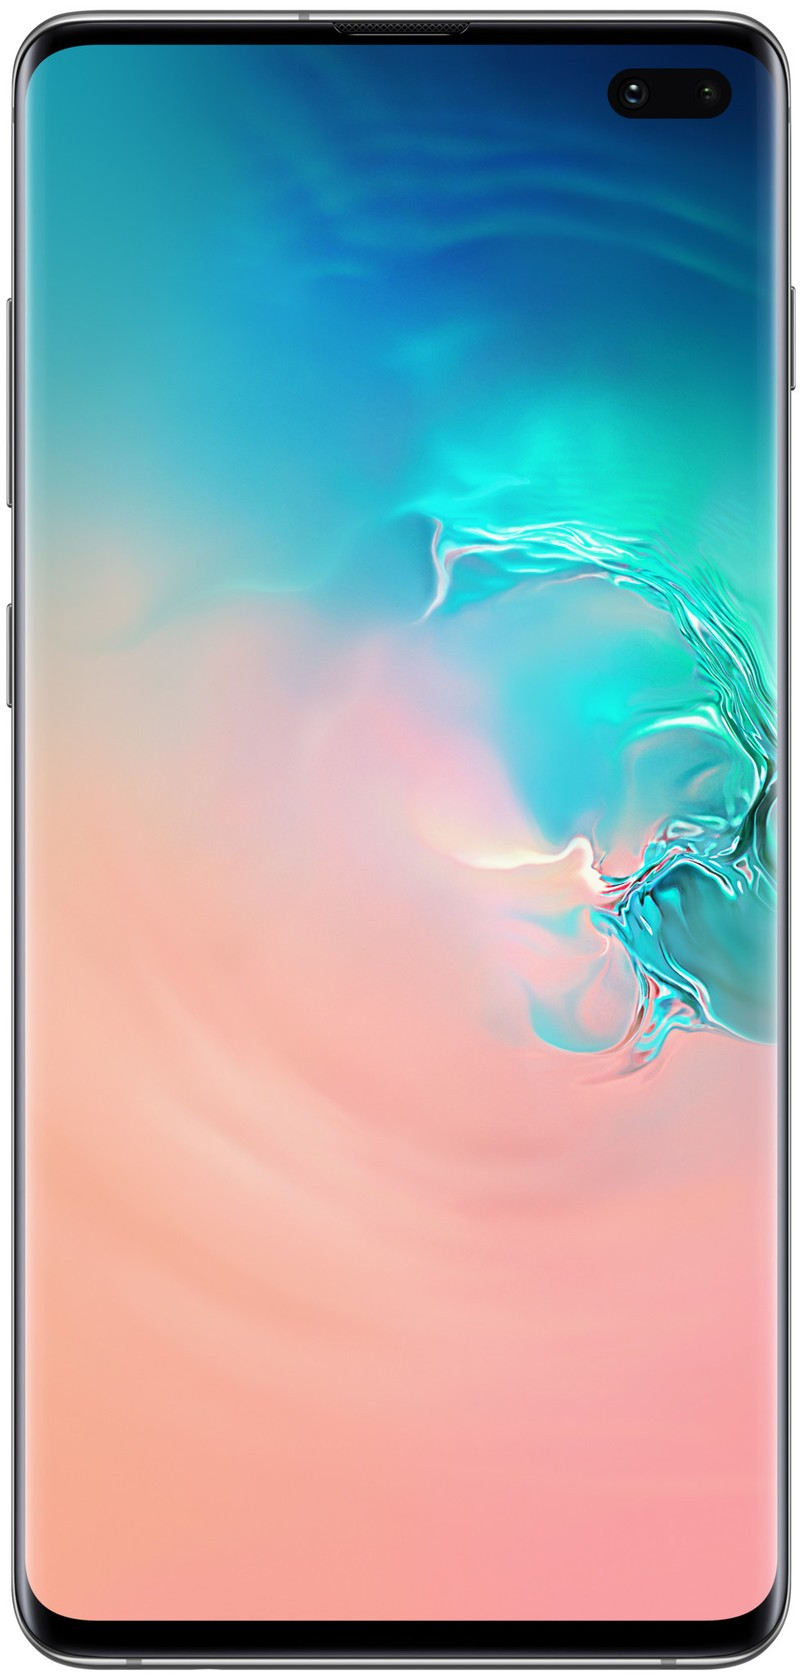 galaxy-s10-plus-render-front-white.jpg?i